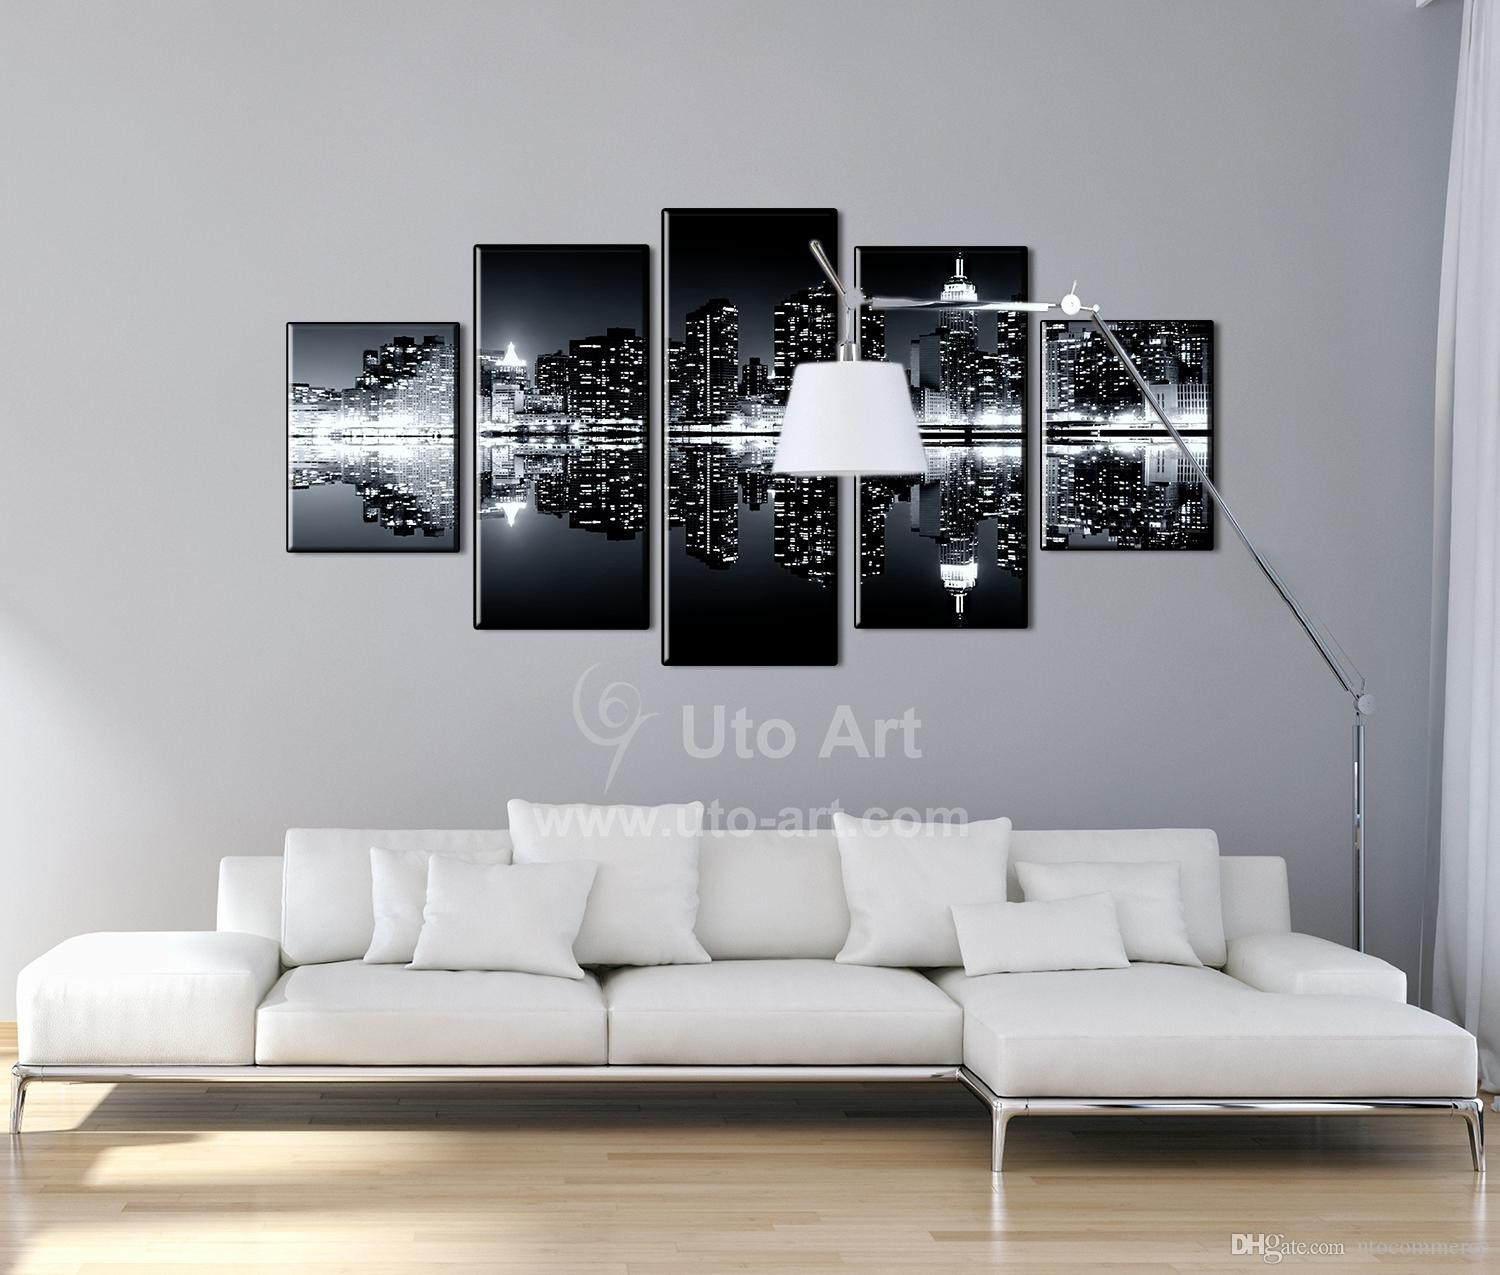 2018 Multi Panel Black Wall Decoration Inverted Image Canvas In 2018 Ku Canvas Wall Art (Gallery 13 of 15)